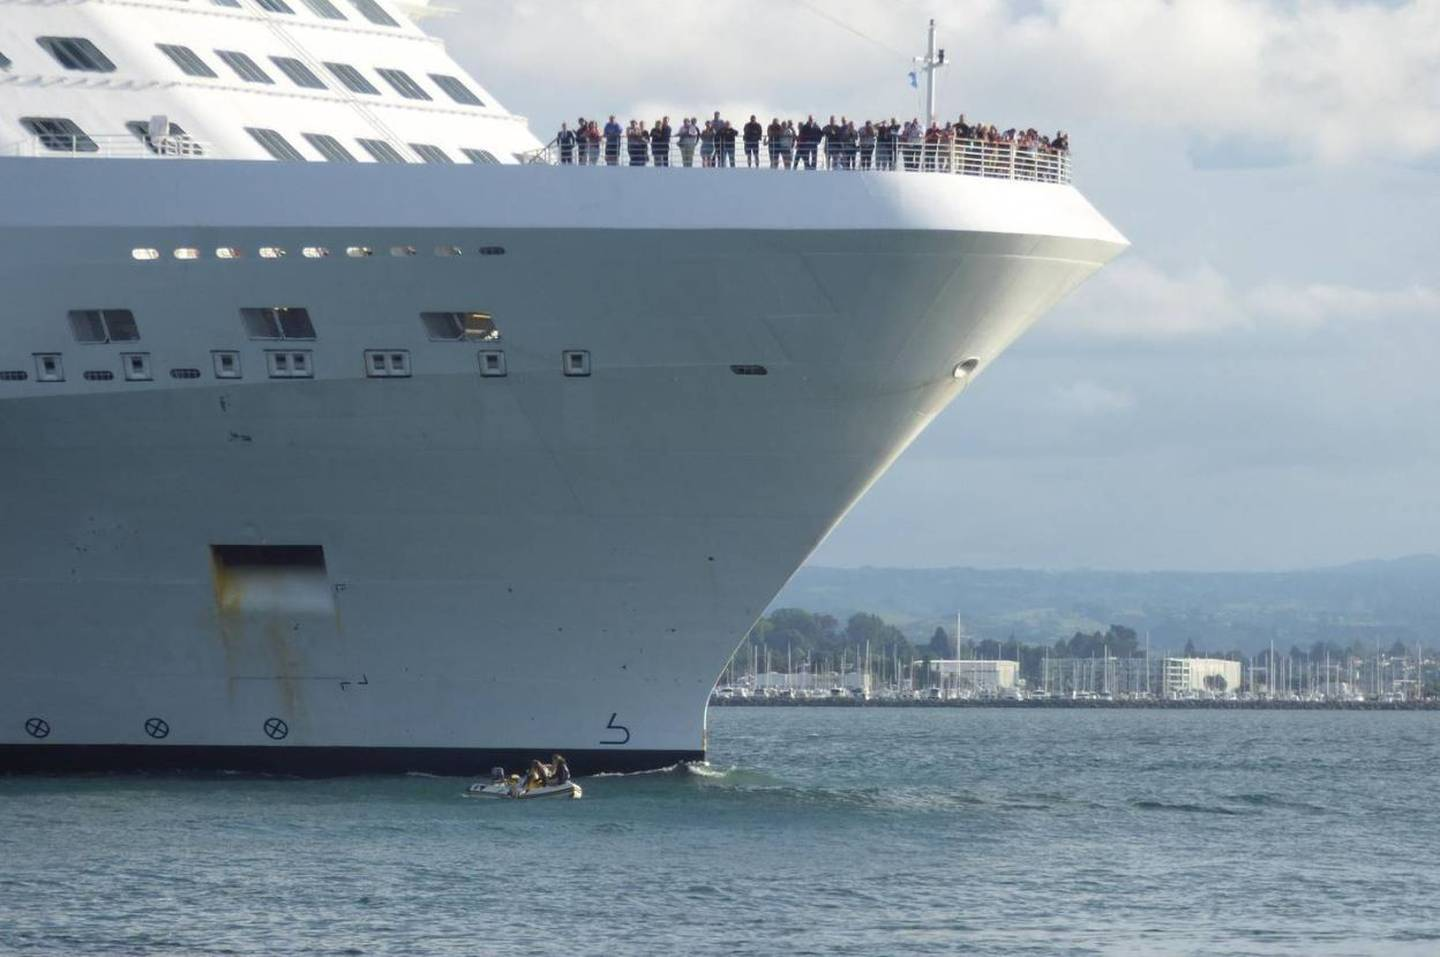 Cruise ship passengers watched the incident unfold. Photo: Aaron Randell